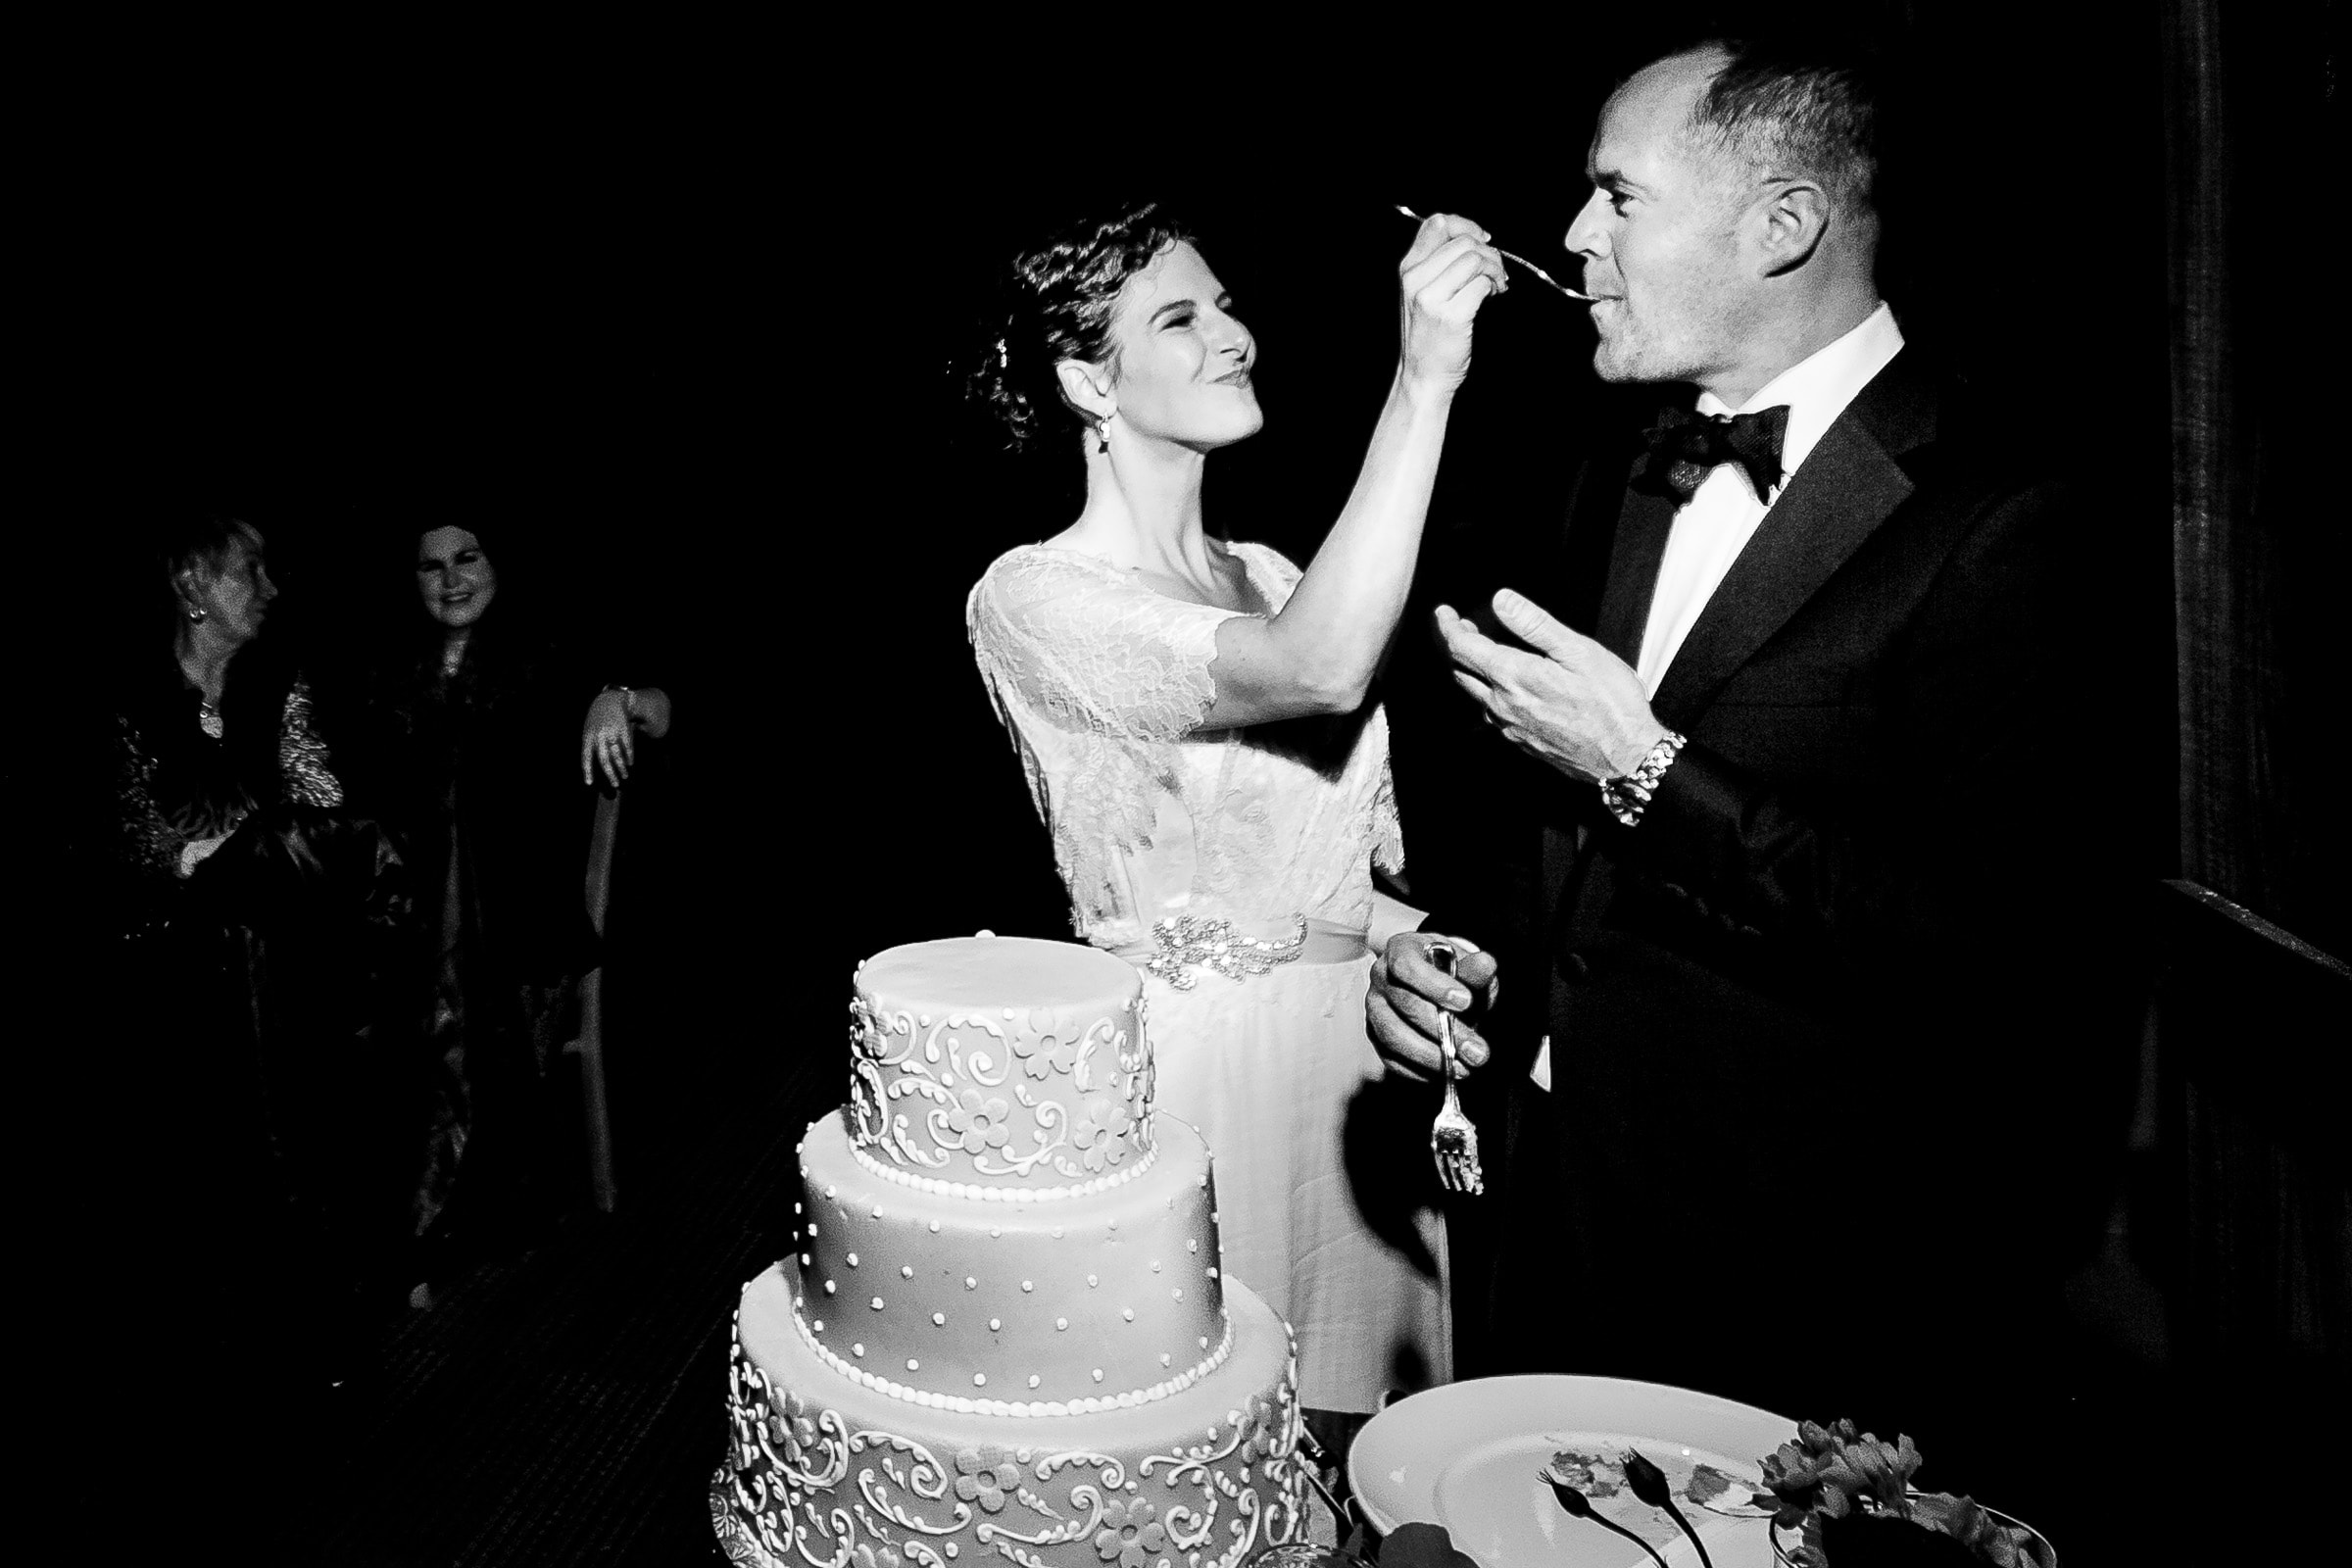 Bride feeding groom cake at Lidia's during their Kansas City elopement reception after their wedding at The Pilgrim Chapel.